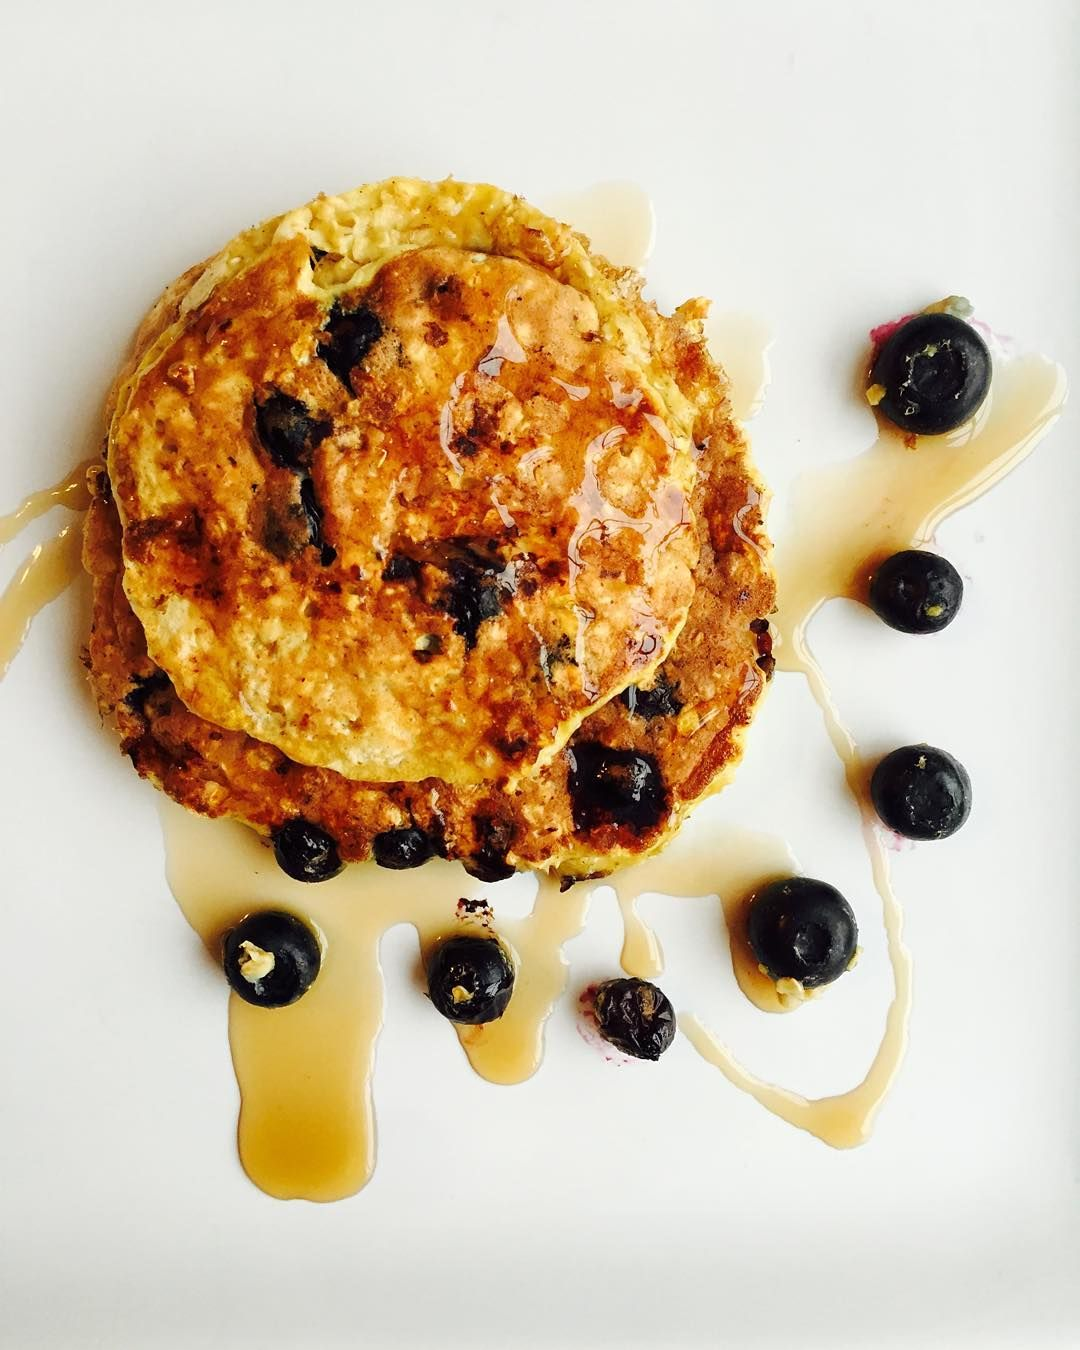 fitgirlsguide fitgirlscook blueberry pancakes were delicious 34g